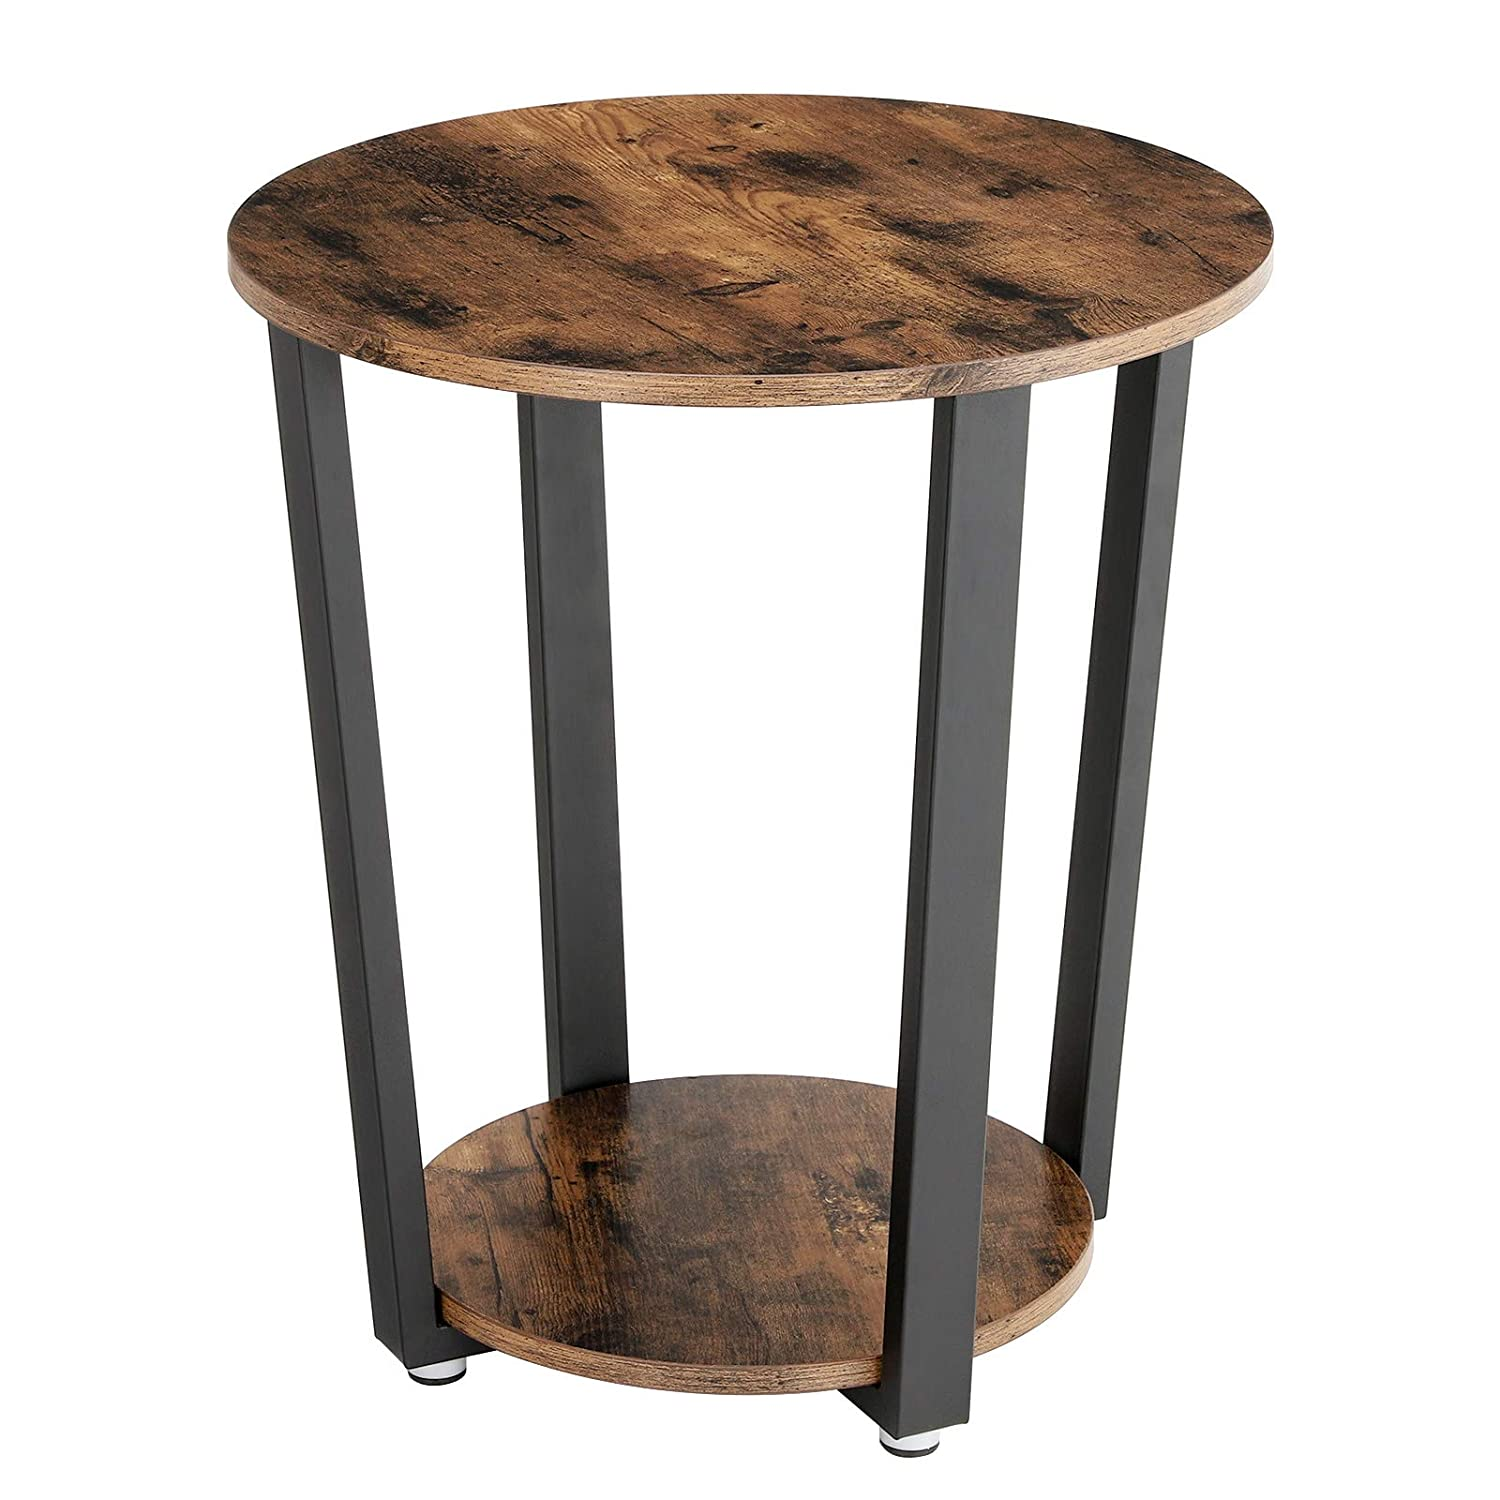 Attirant VASAGLE Industrial End Table, Metal Side Table, Round Sofa Table With  Storage Rack, Stable And Sturdy Construction, Easy Assembly, Wood Look  Accent ...